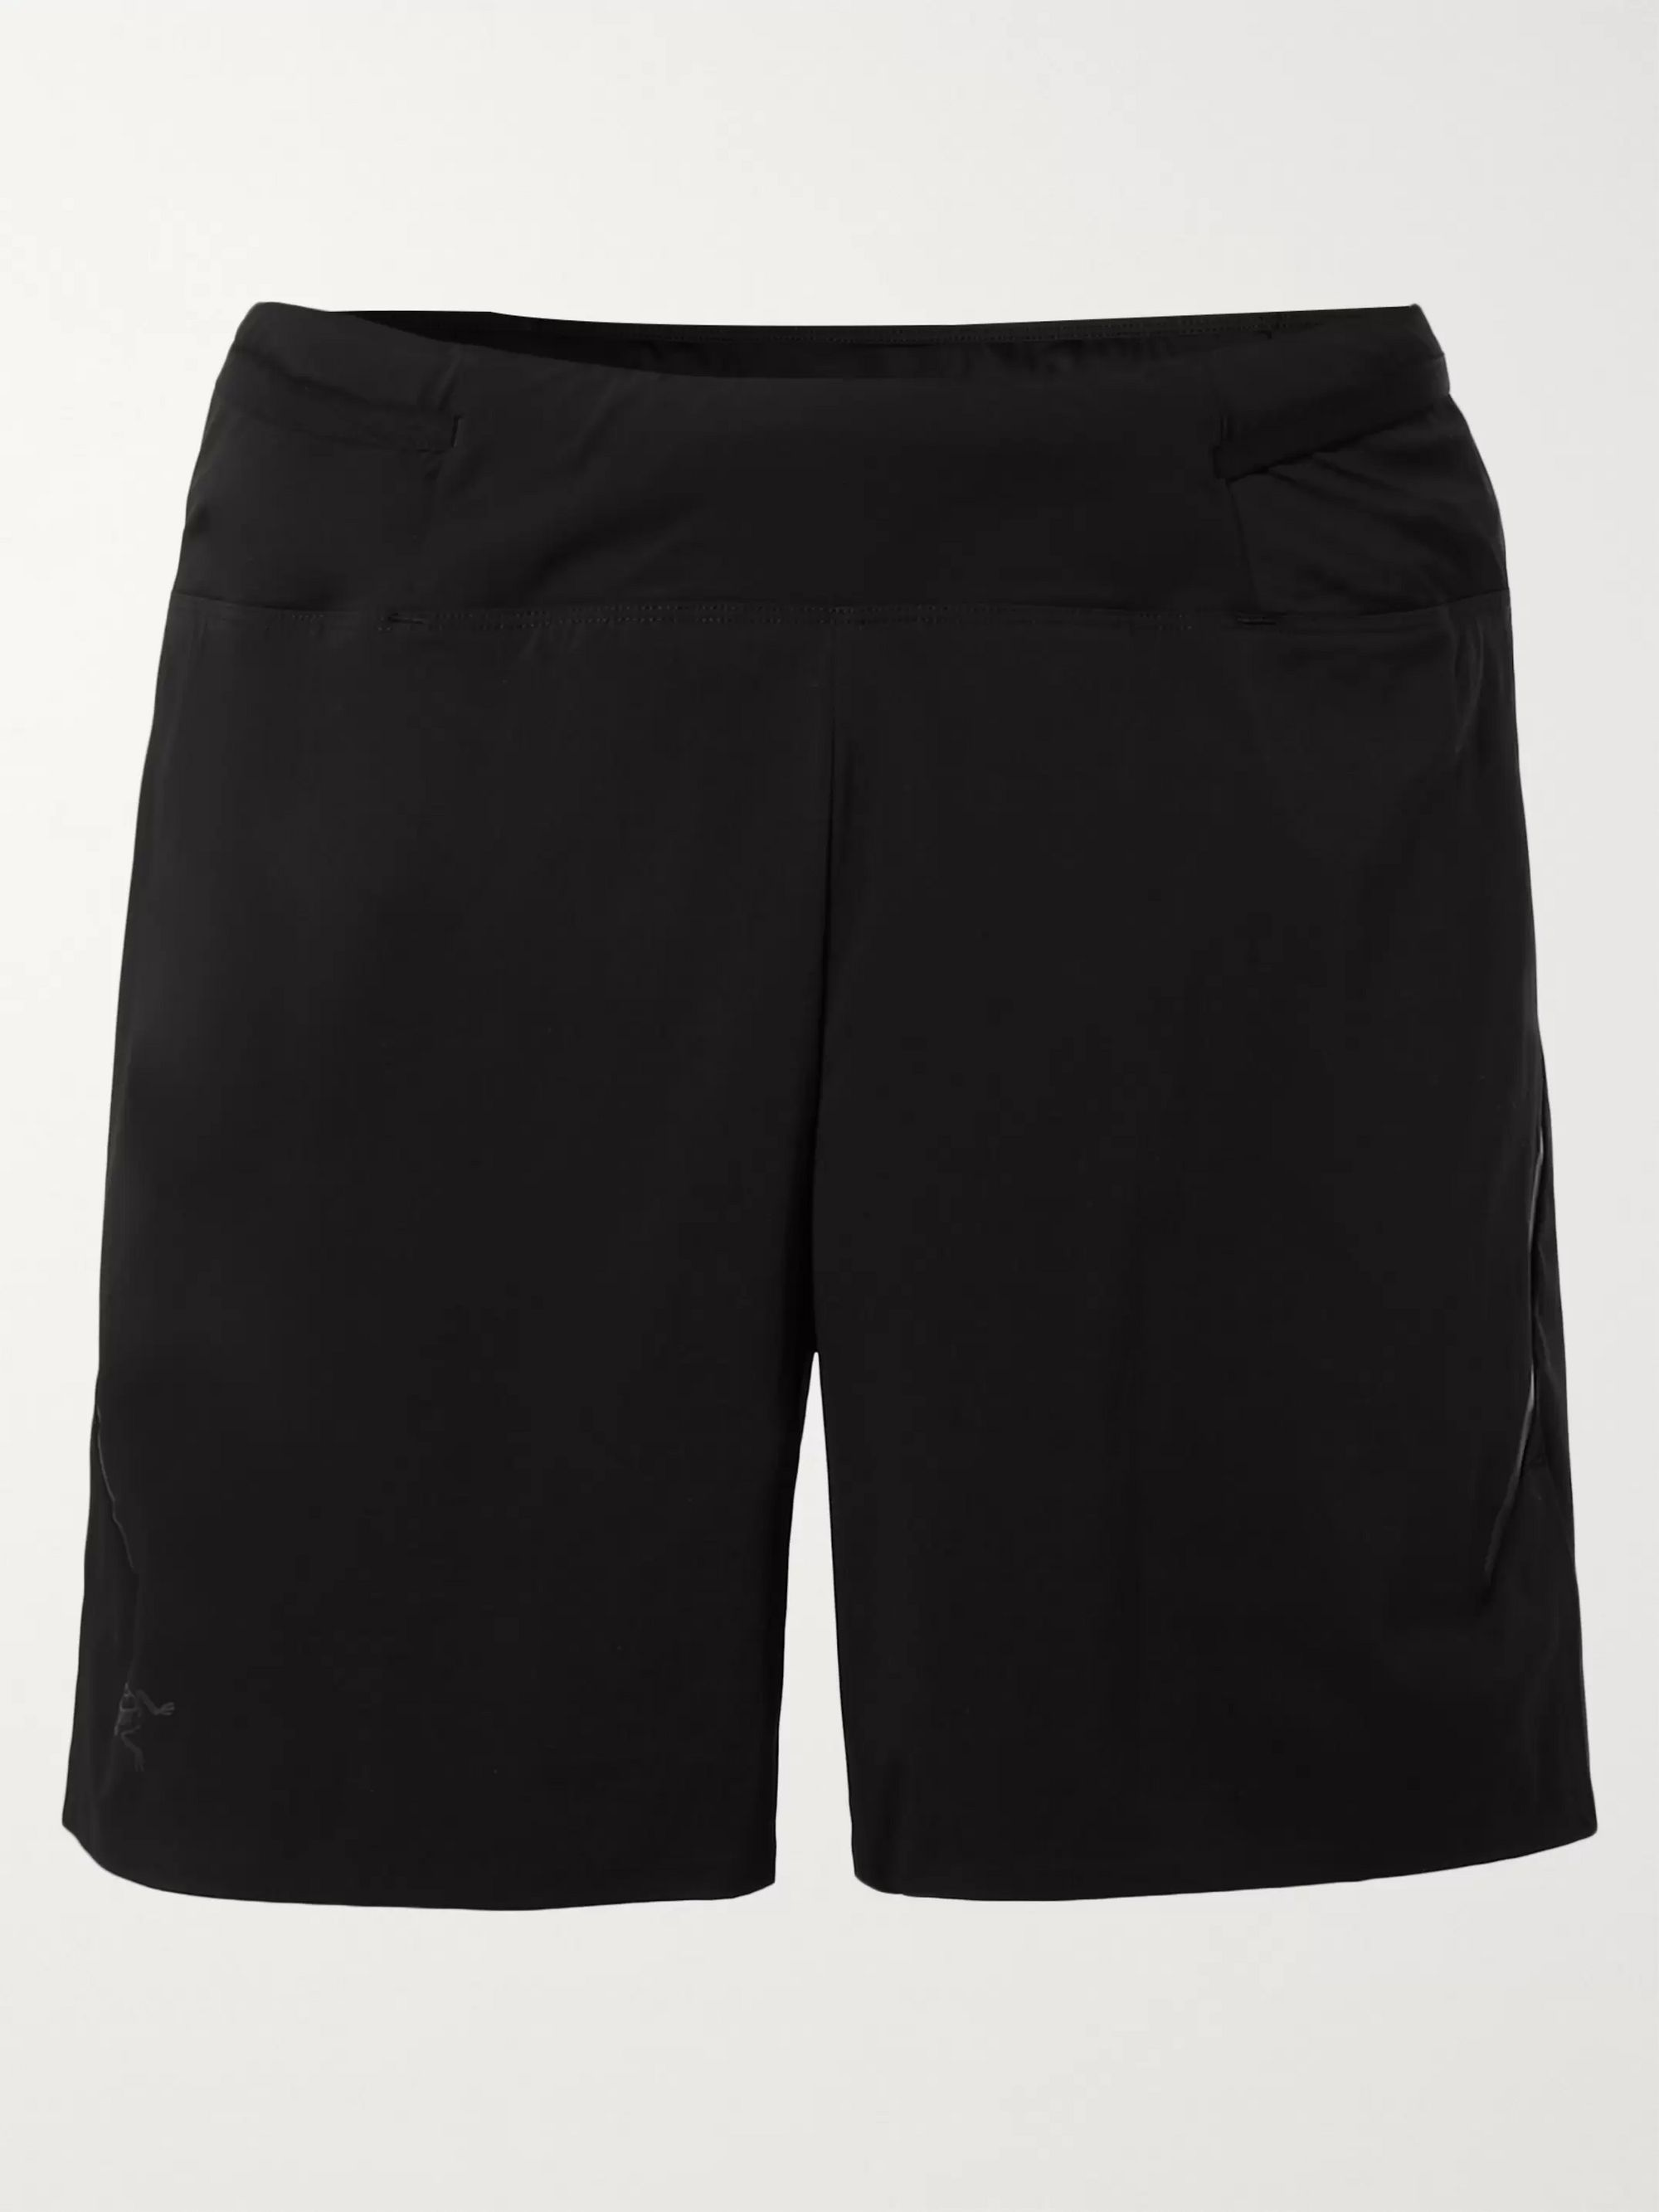 Arc'teryx Motus Slim-Fit Teslin Running Shorts